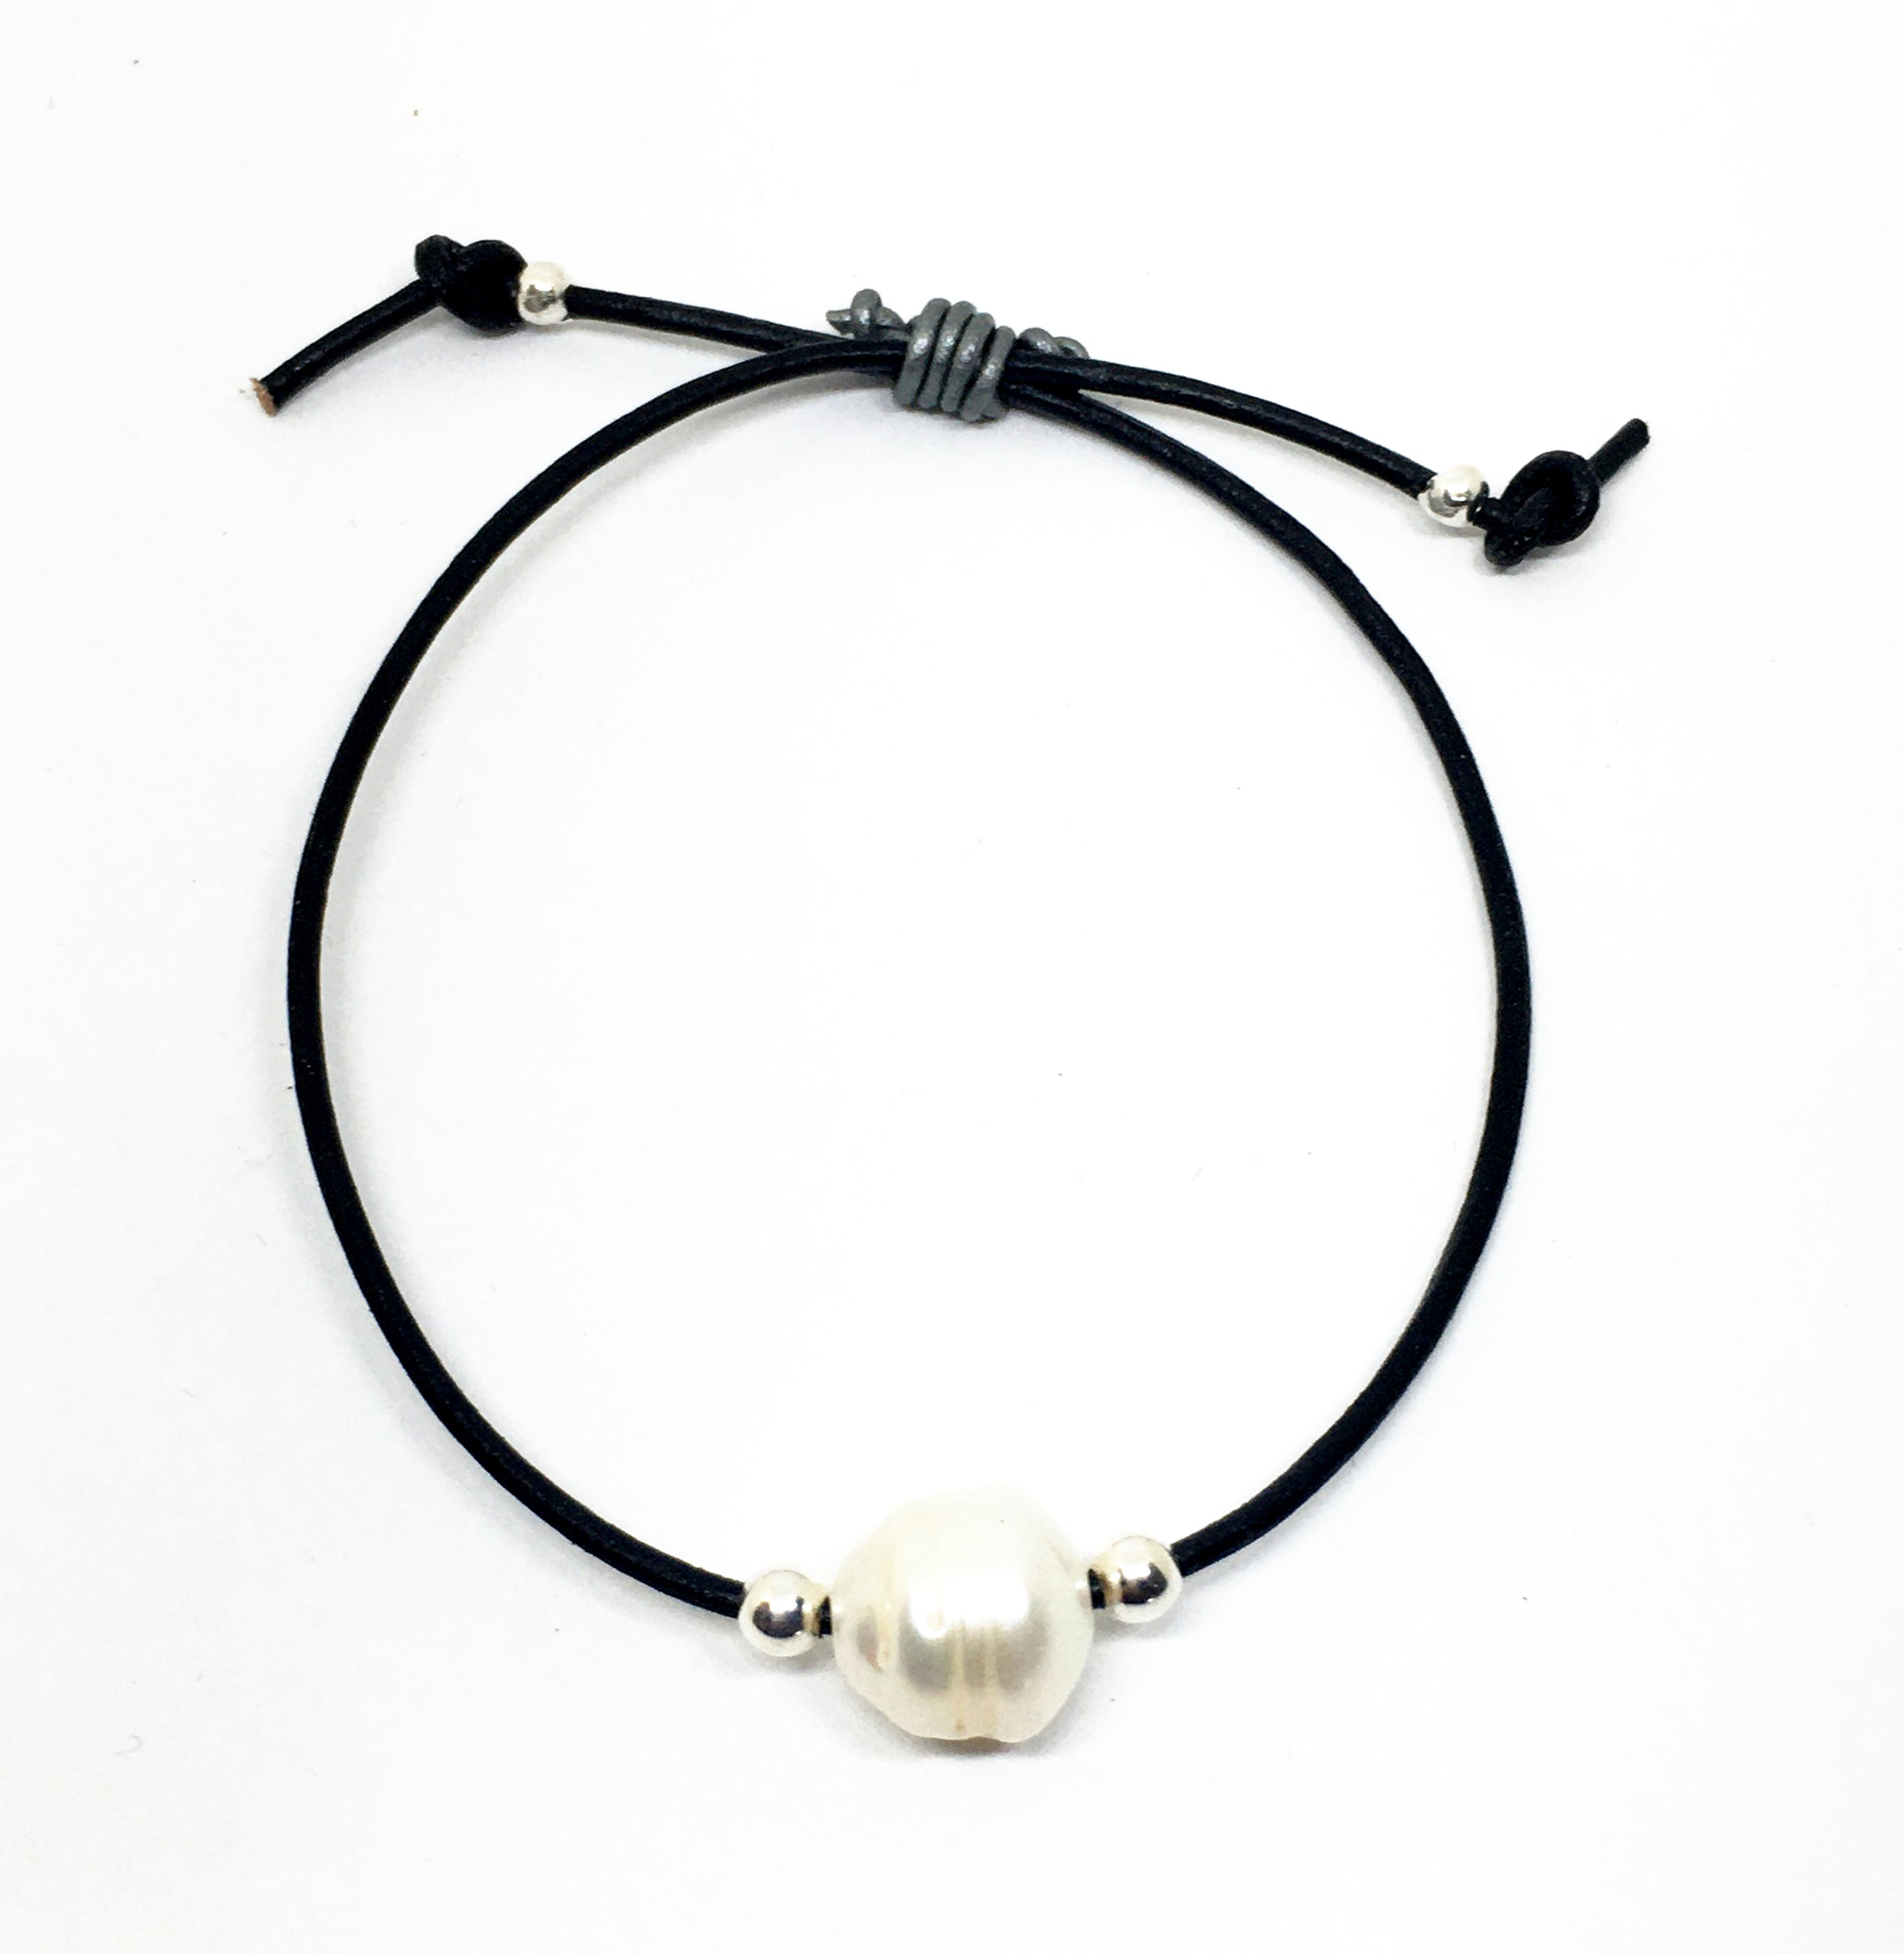 baroque white pearl and silver bead adjustable black leather bracelet